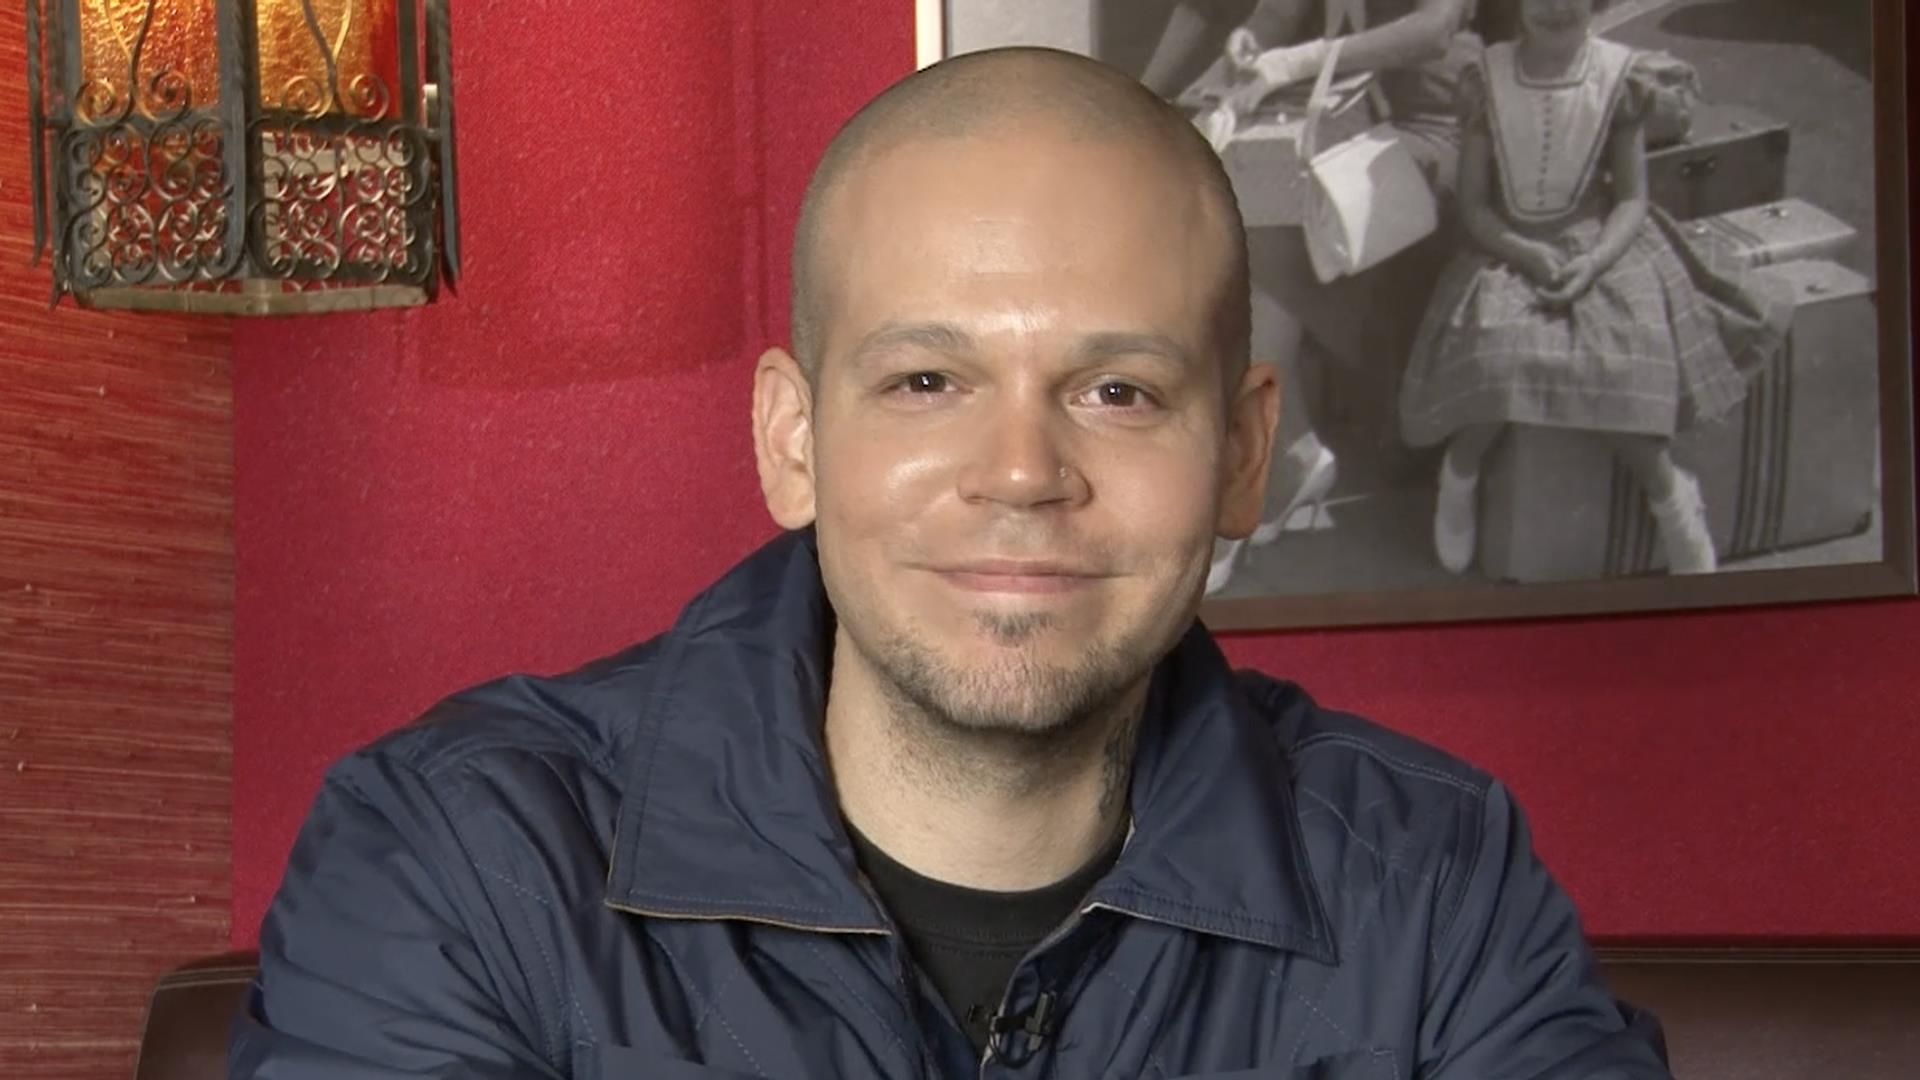 Calle 13's Rene on his career, inspiration